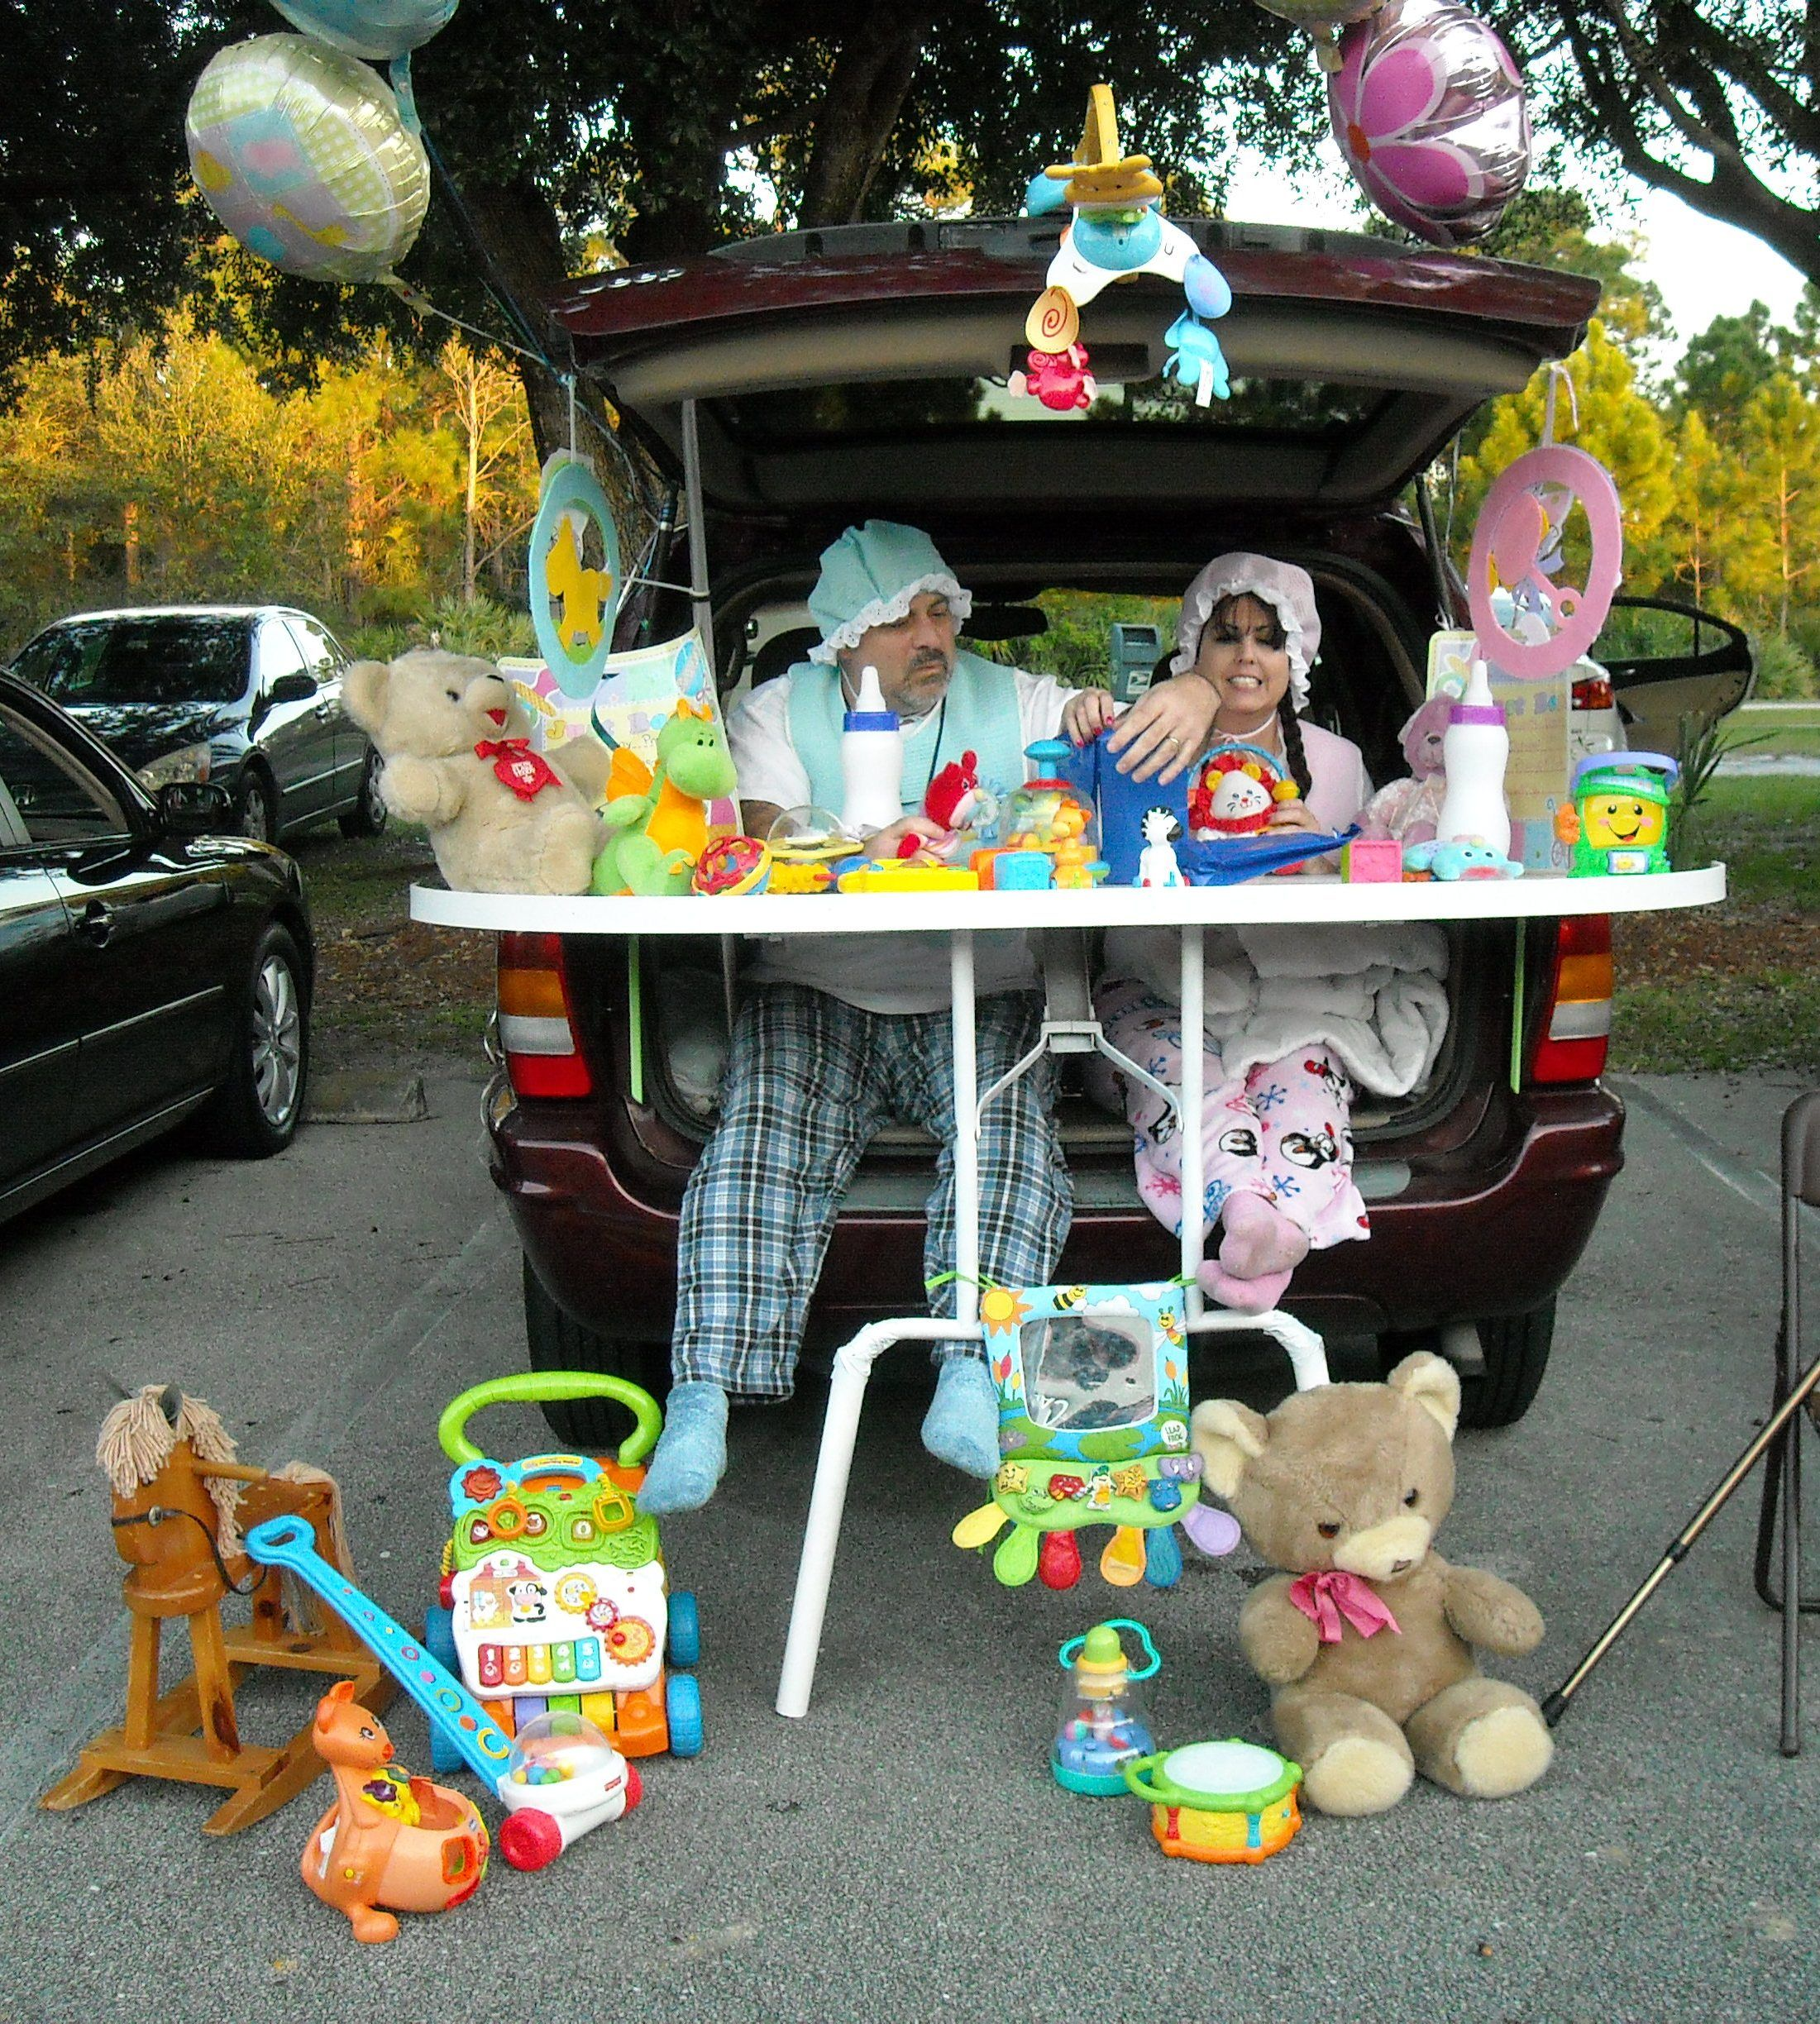 Simple Wedding Car Decoration Ideas: 1st Prize! Trunk Or Treat! (With Images)